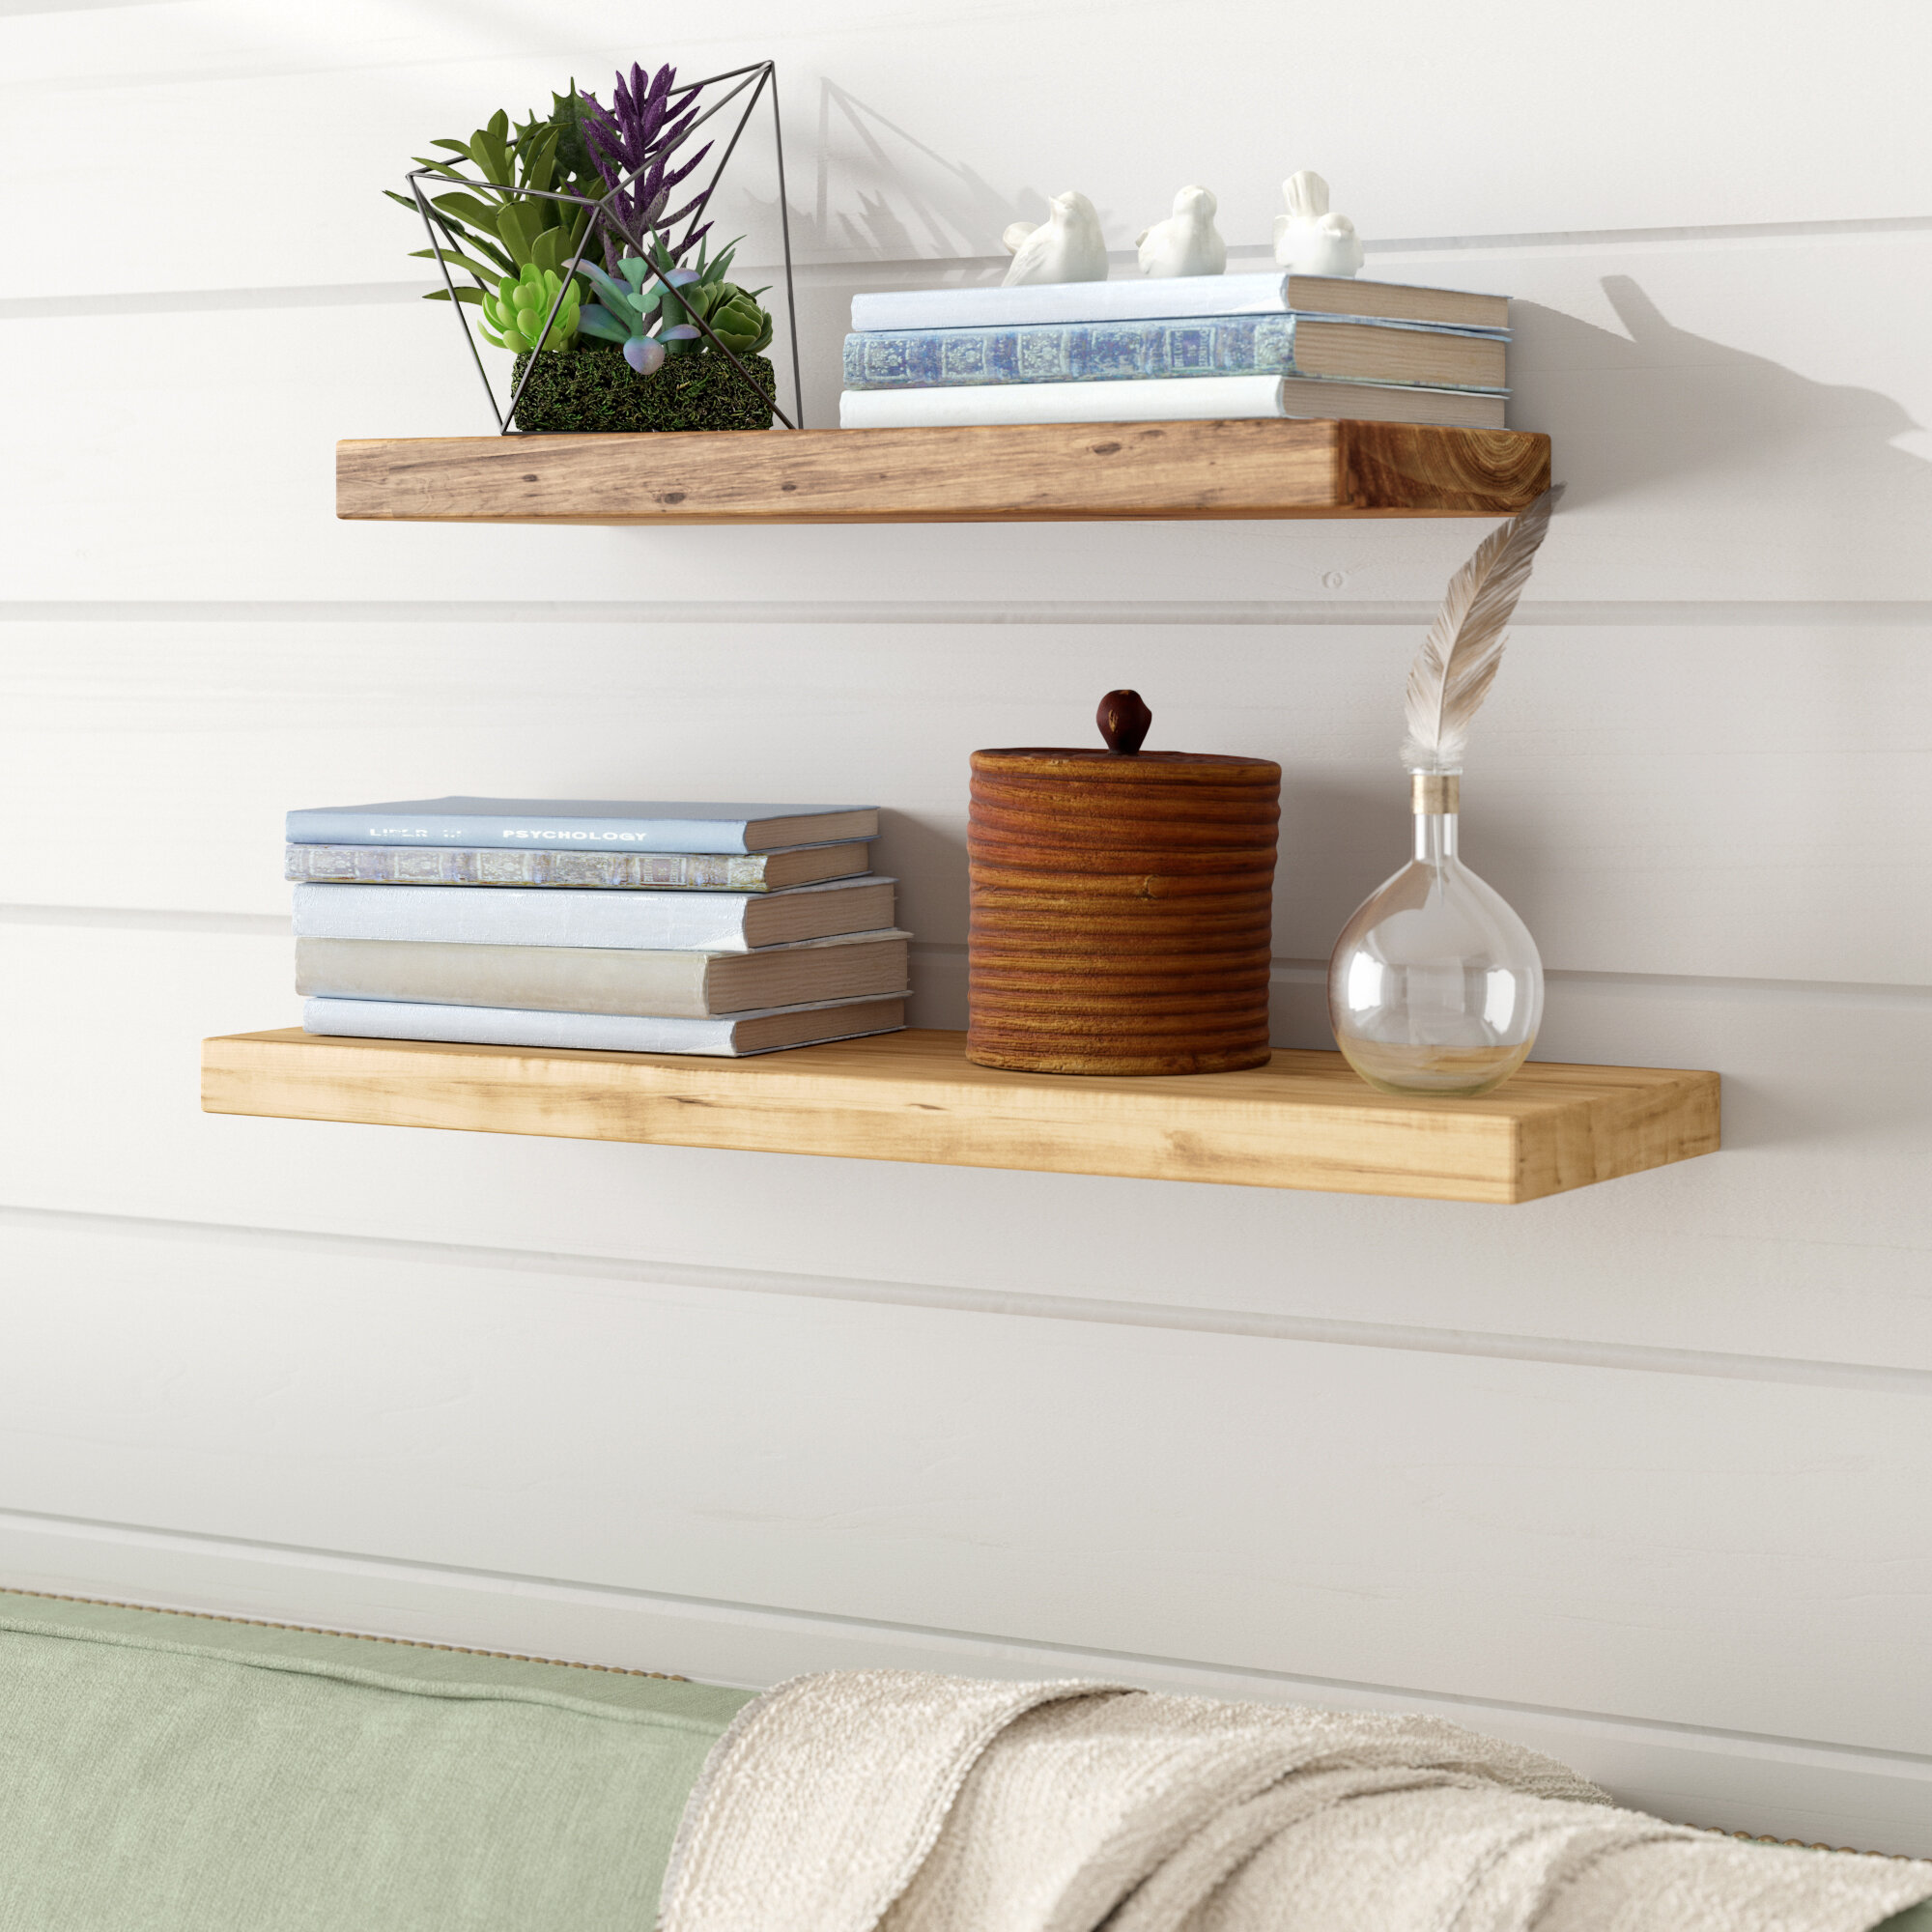 Gracie Oaks Oglesby Cedar True 2 Piece Floating Shelf Set